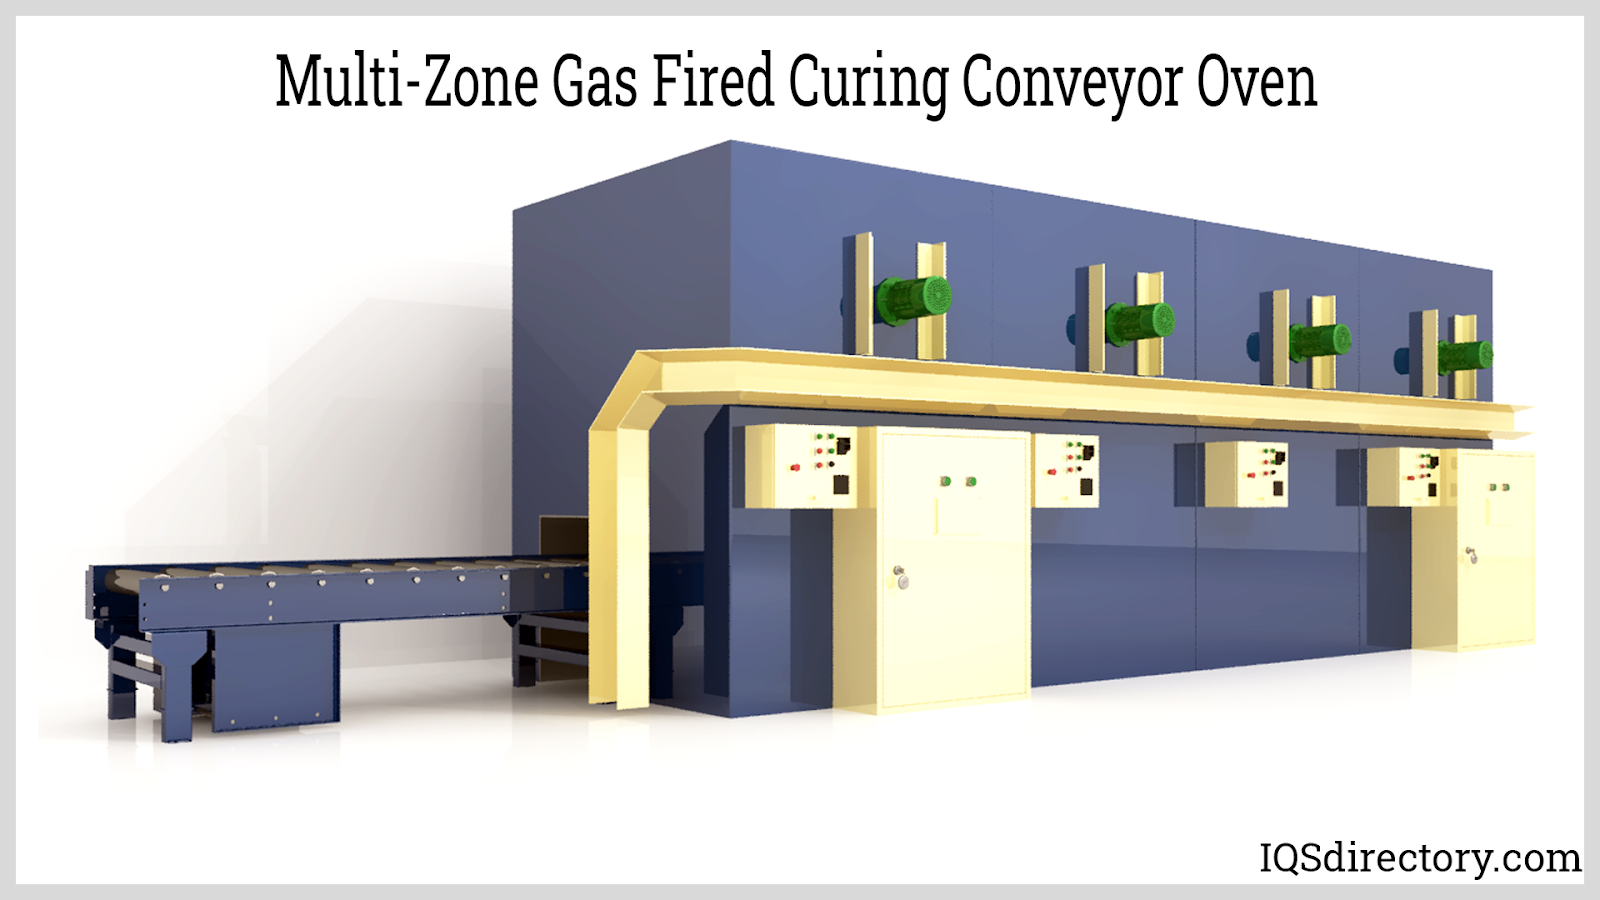 Multi-Zone Gas Fired Curing Conveyor Oven